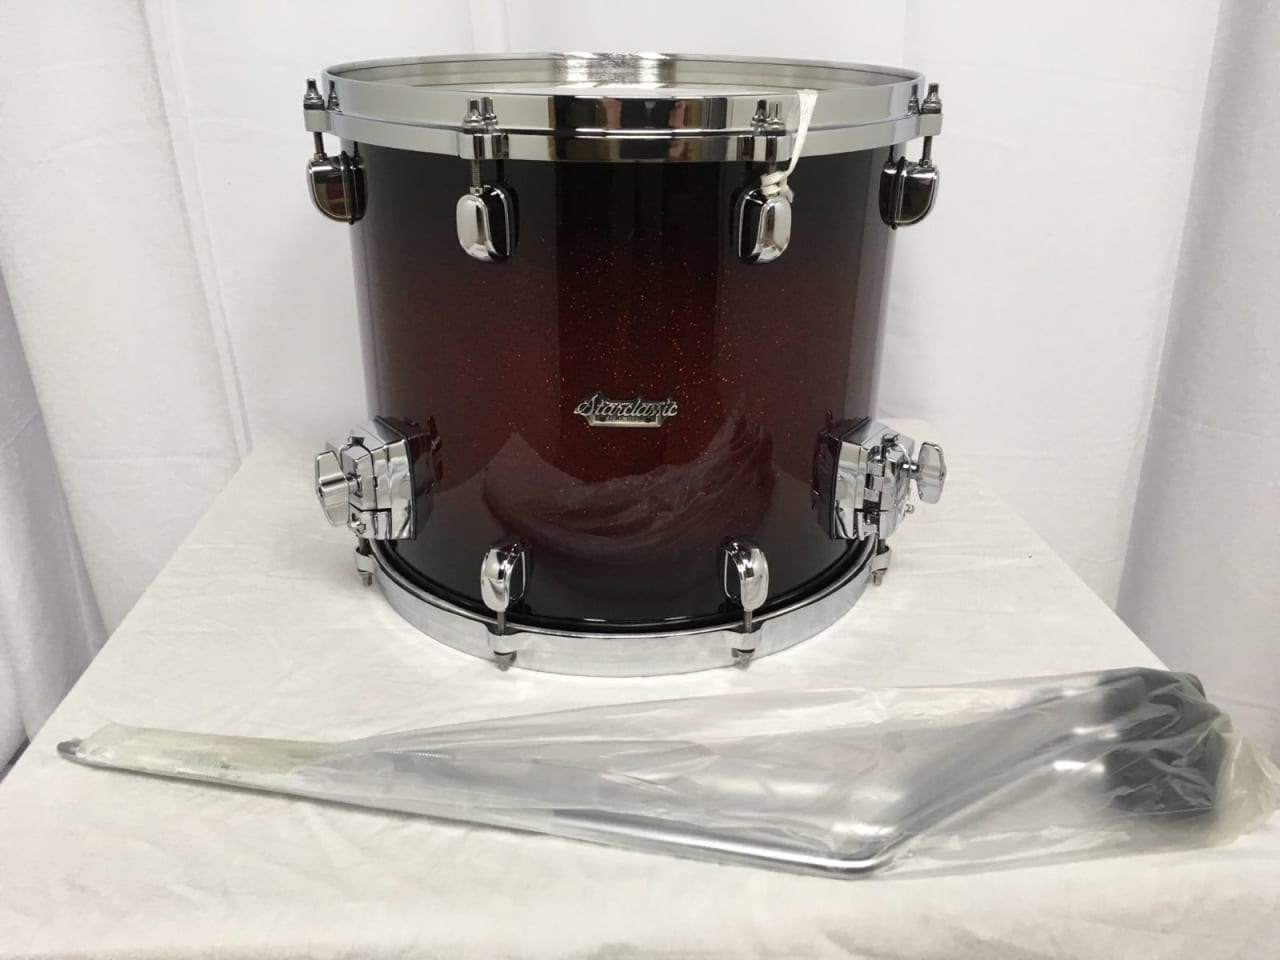 Tama starclassic maple 14 diameter x 12 deep floor tom for 16 x 12 floor tom